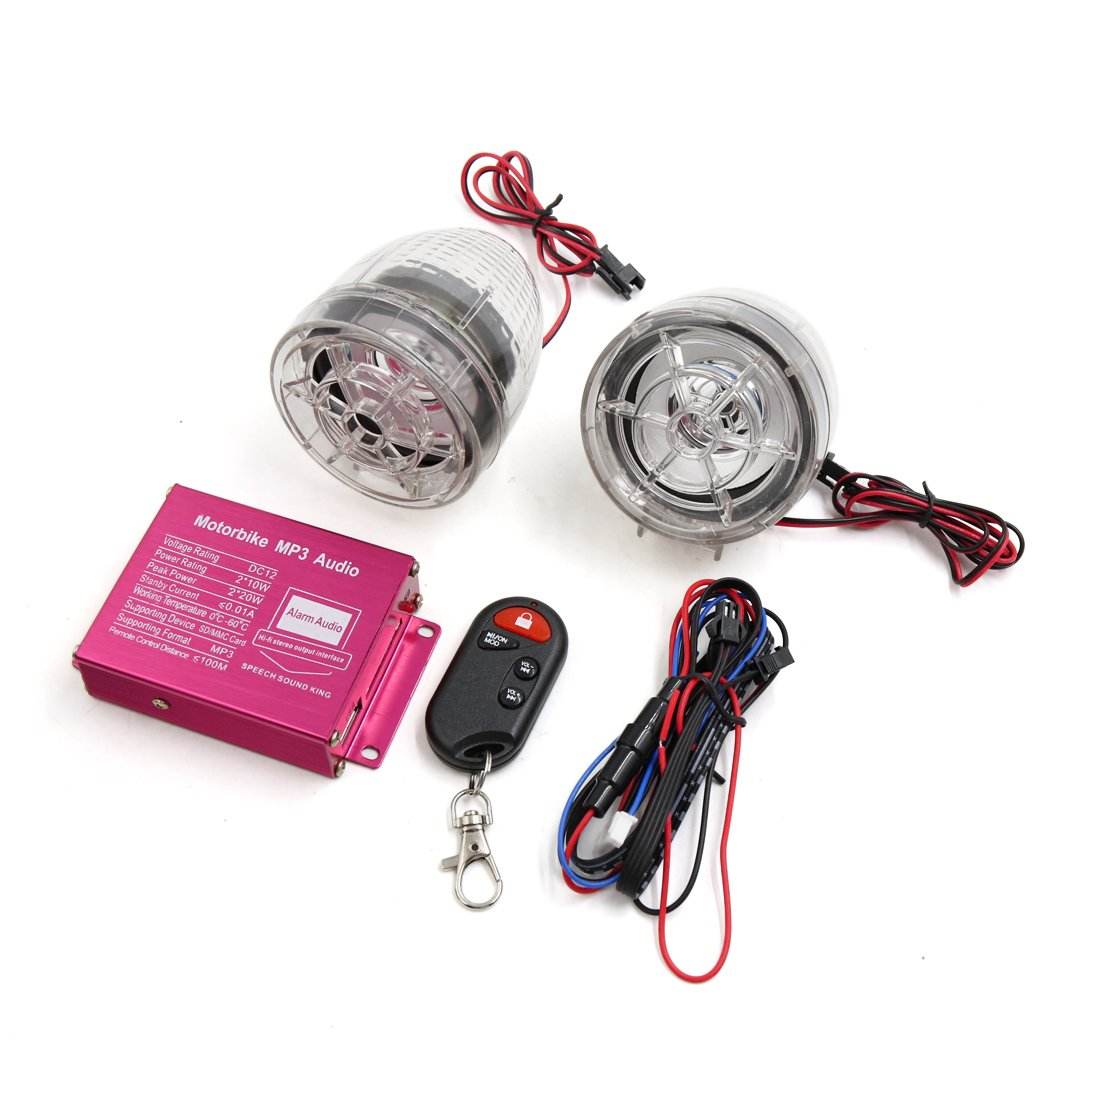 uxcell 2pcs Clear Motorcycle Anti-theft Alarm Stereo Audio MP3 Amplifier Speaker Player